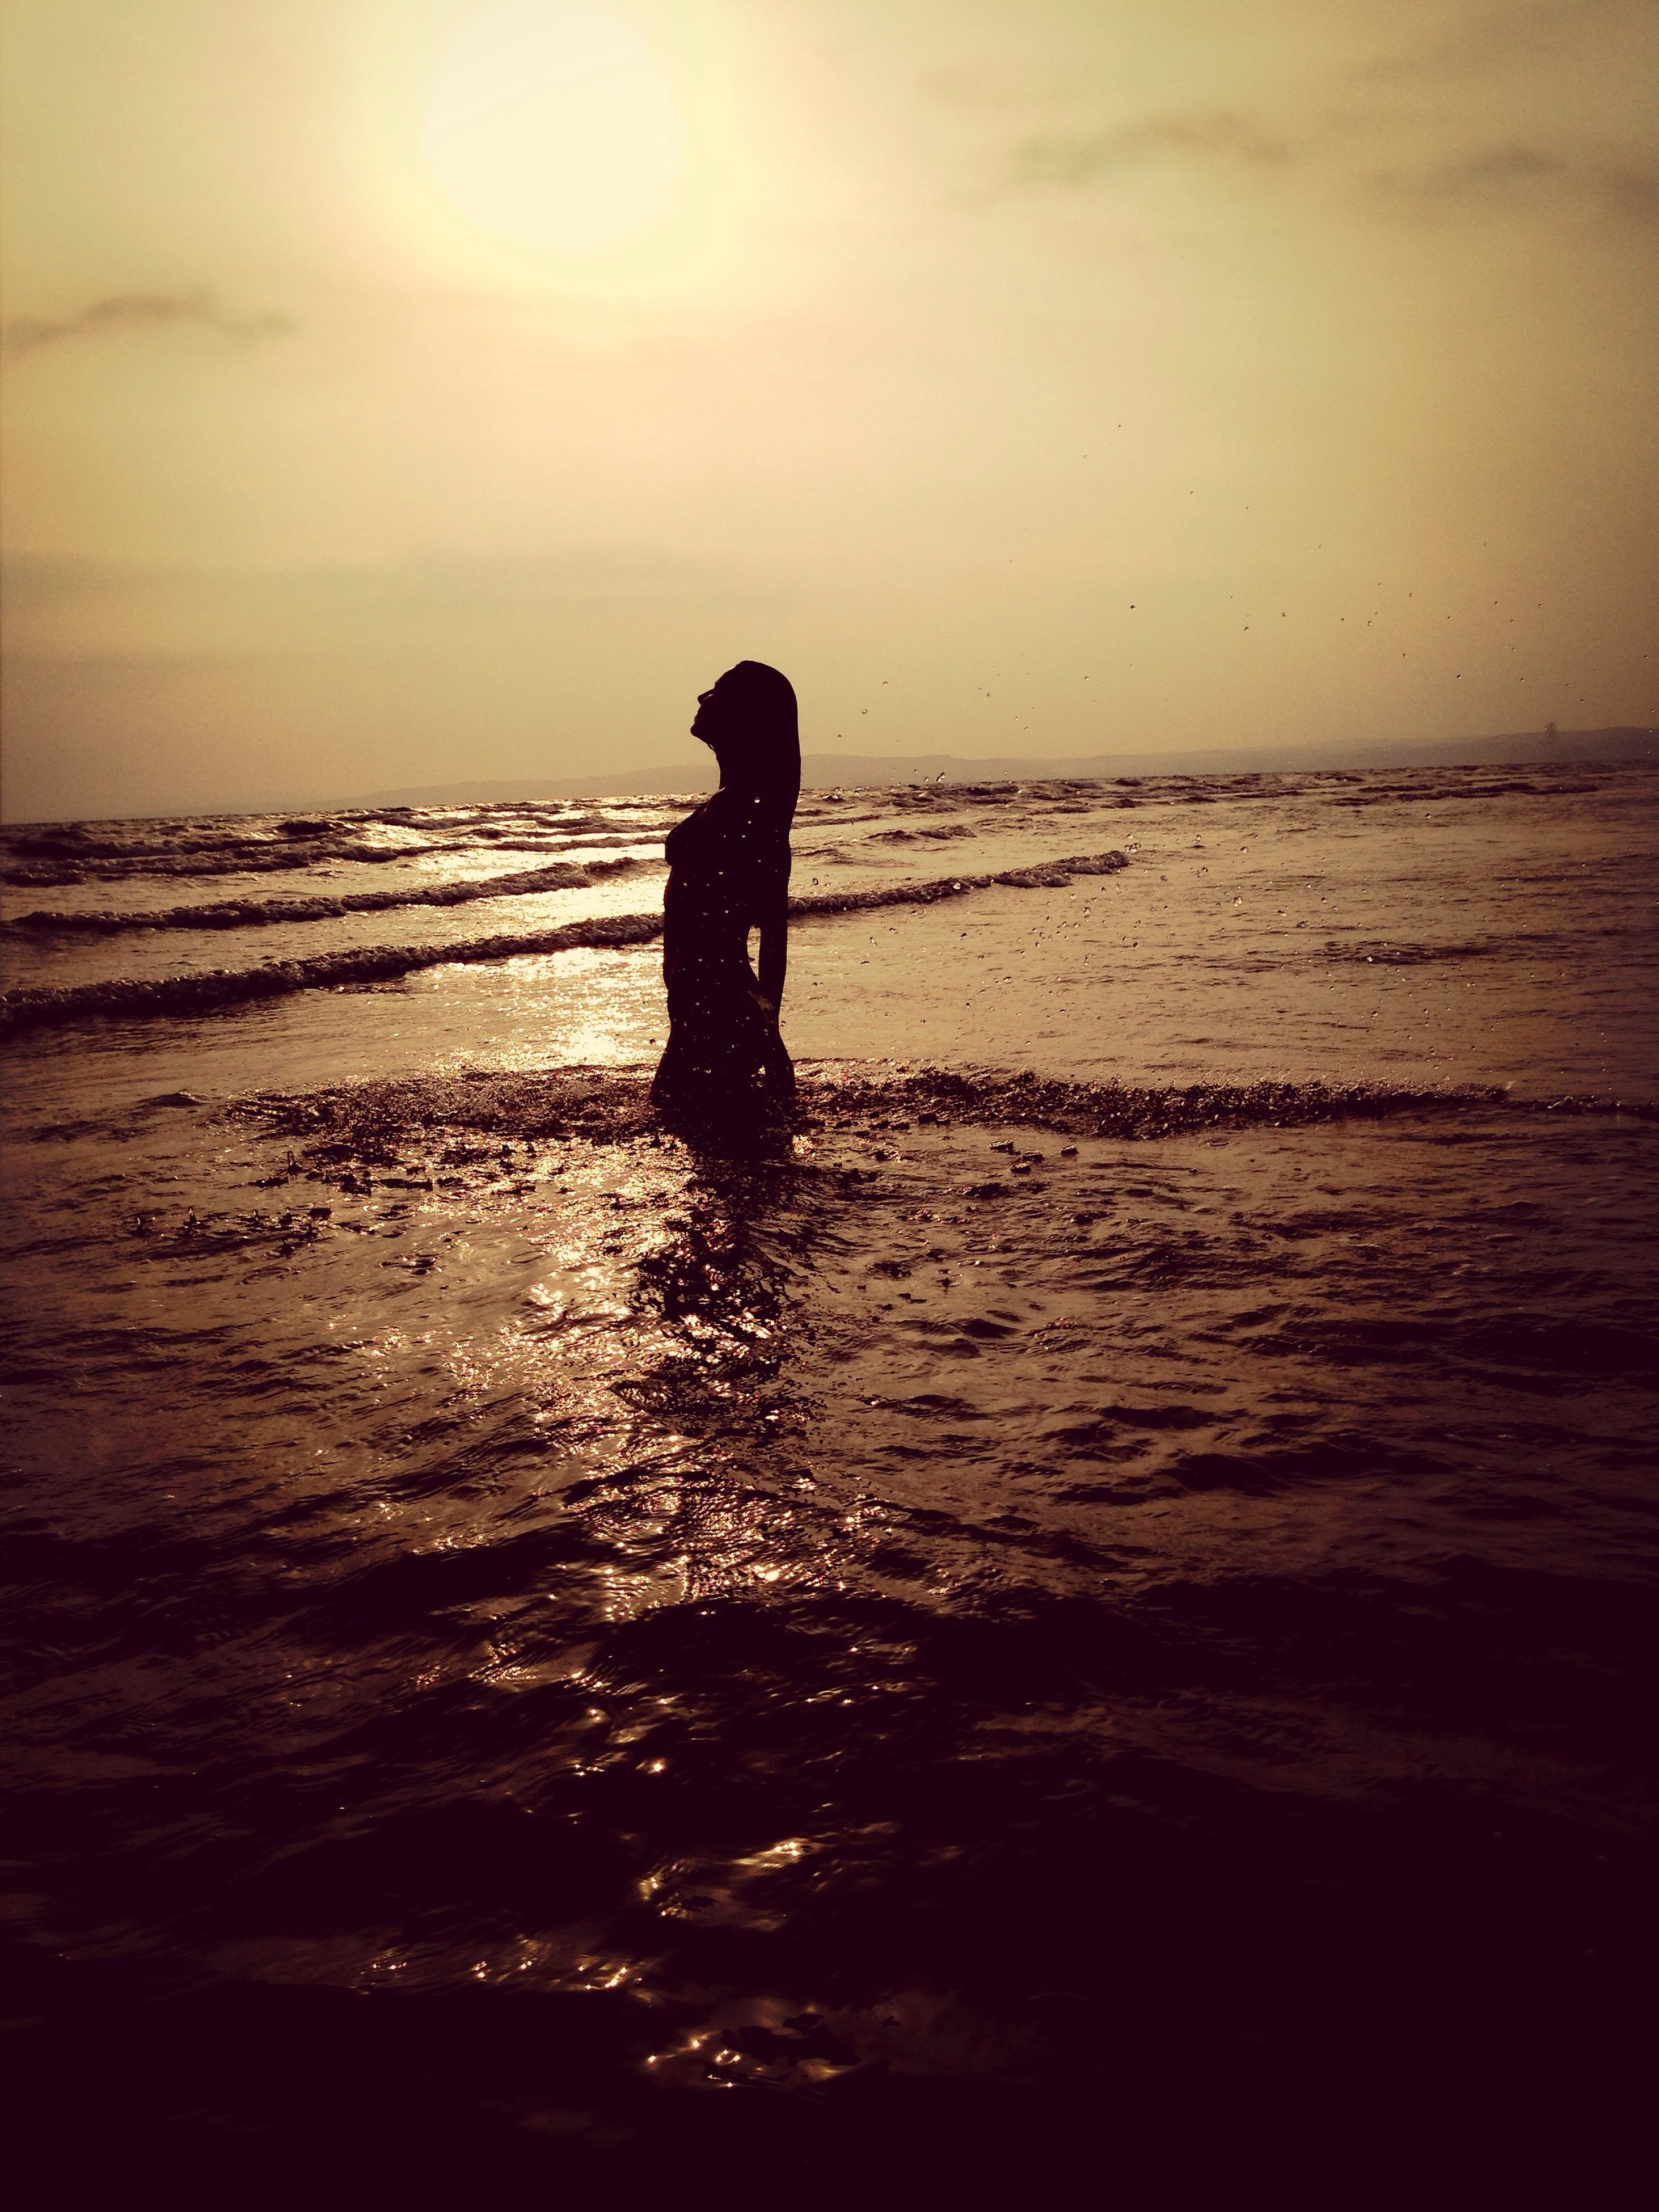 sea, water, horizon over water, sunset, silhouette, beach, scenics, sky, tranquil scene, tranquility, beauty in nature, shore, one person, nature, idyllic, reflection, standing, wave, dusk, sun